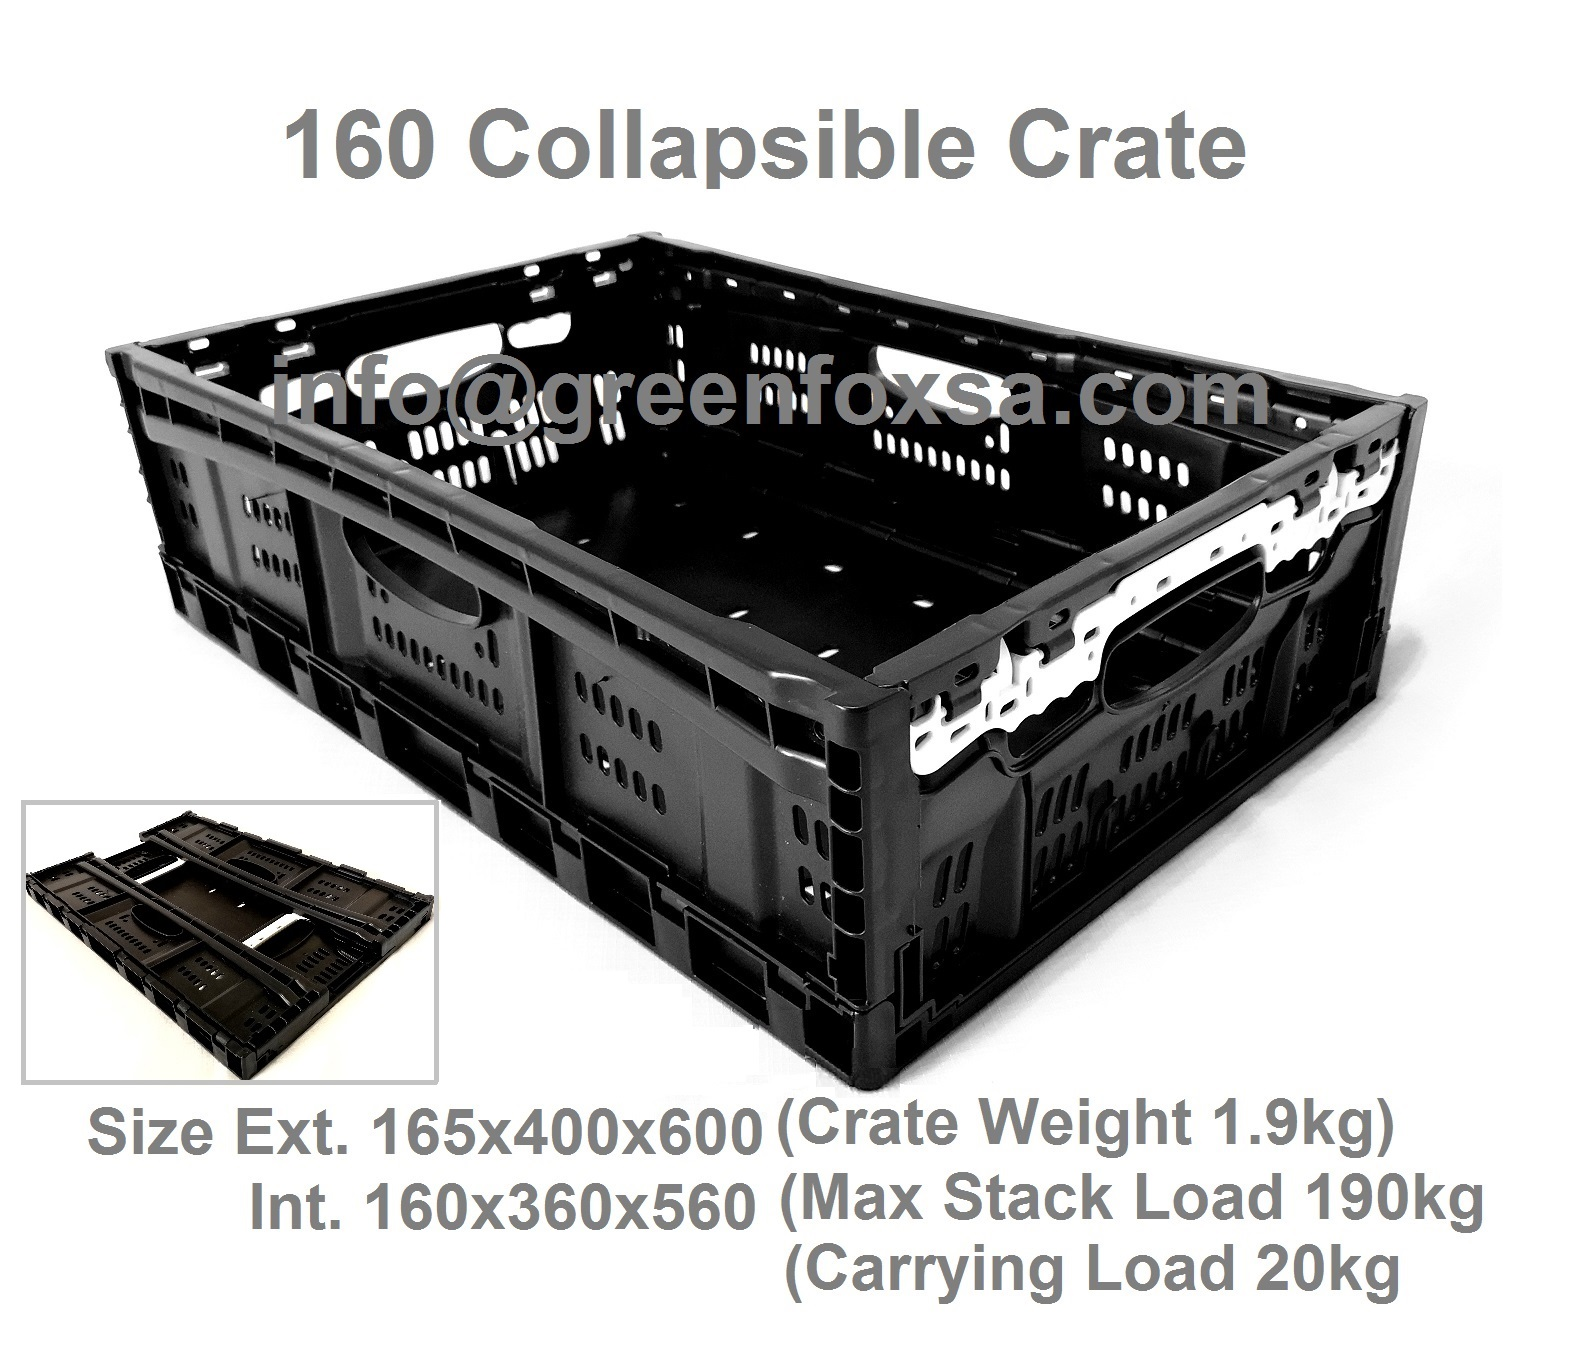 farming-crates-collapsible-160-black-plastic-crates